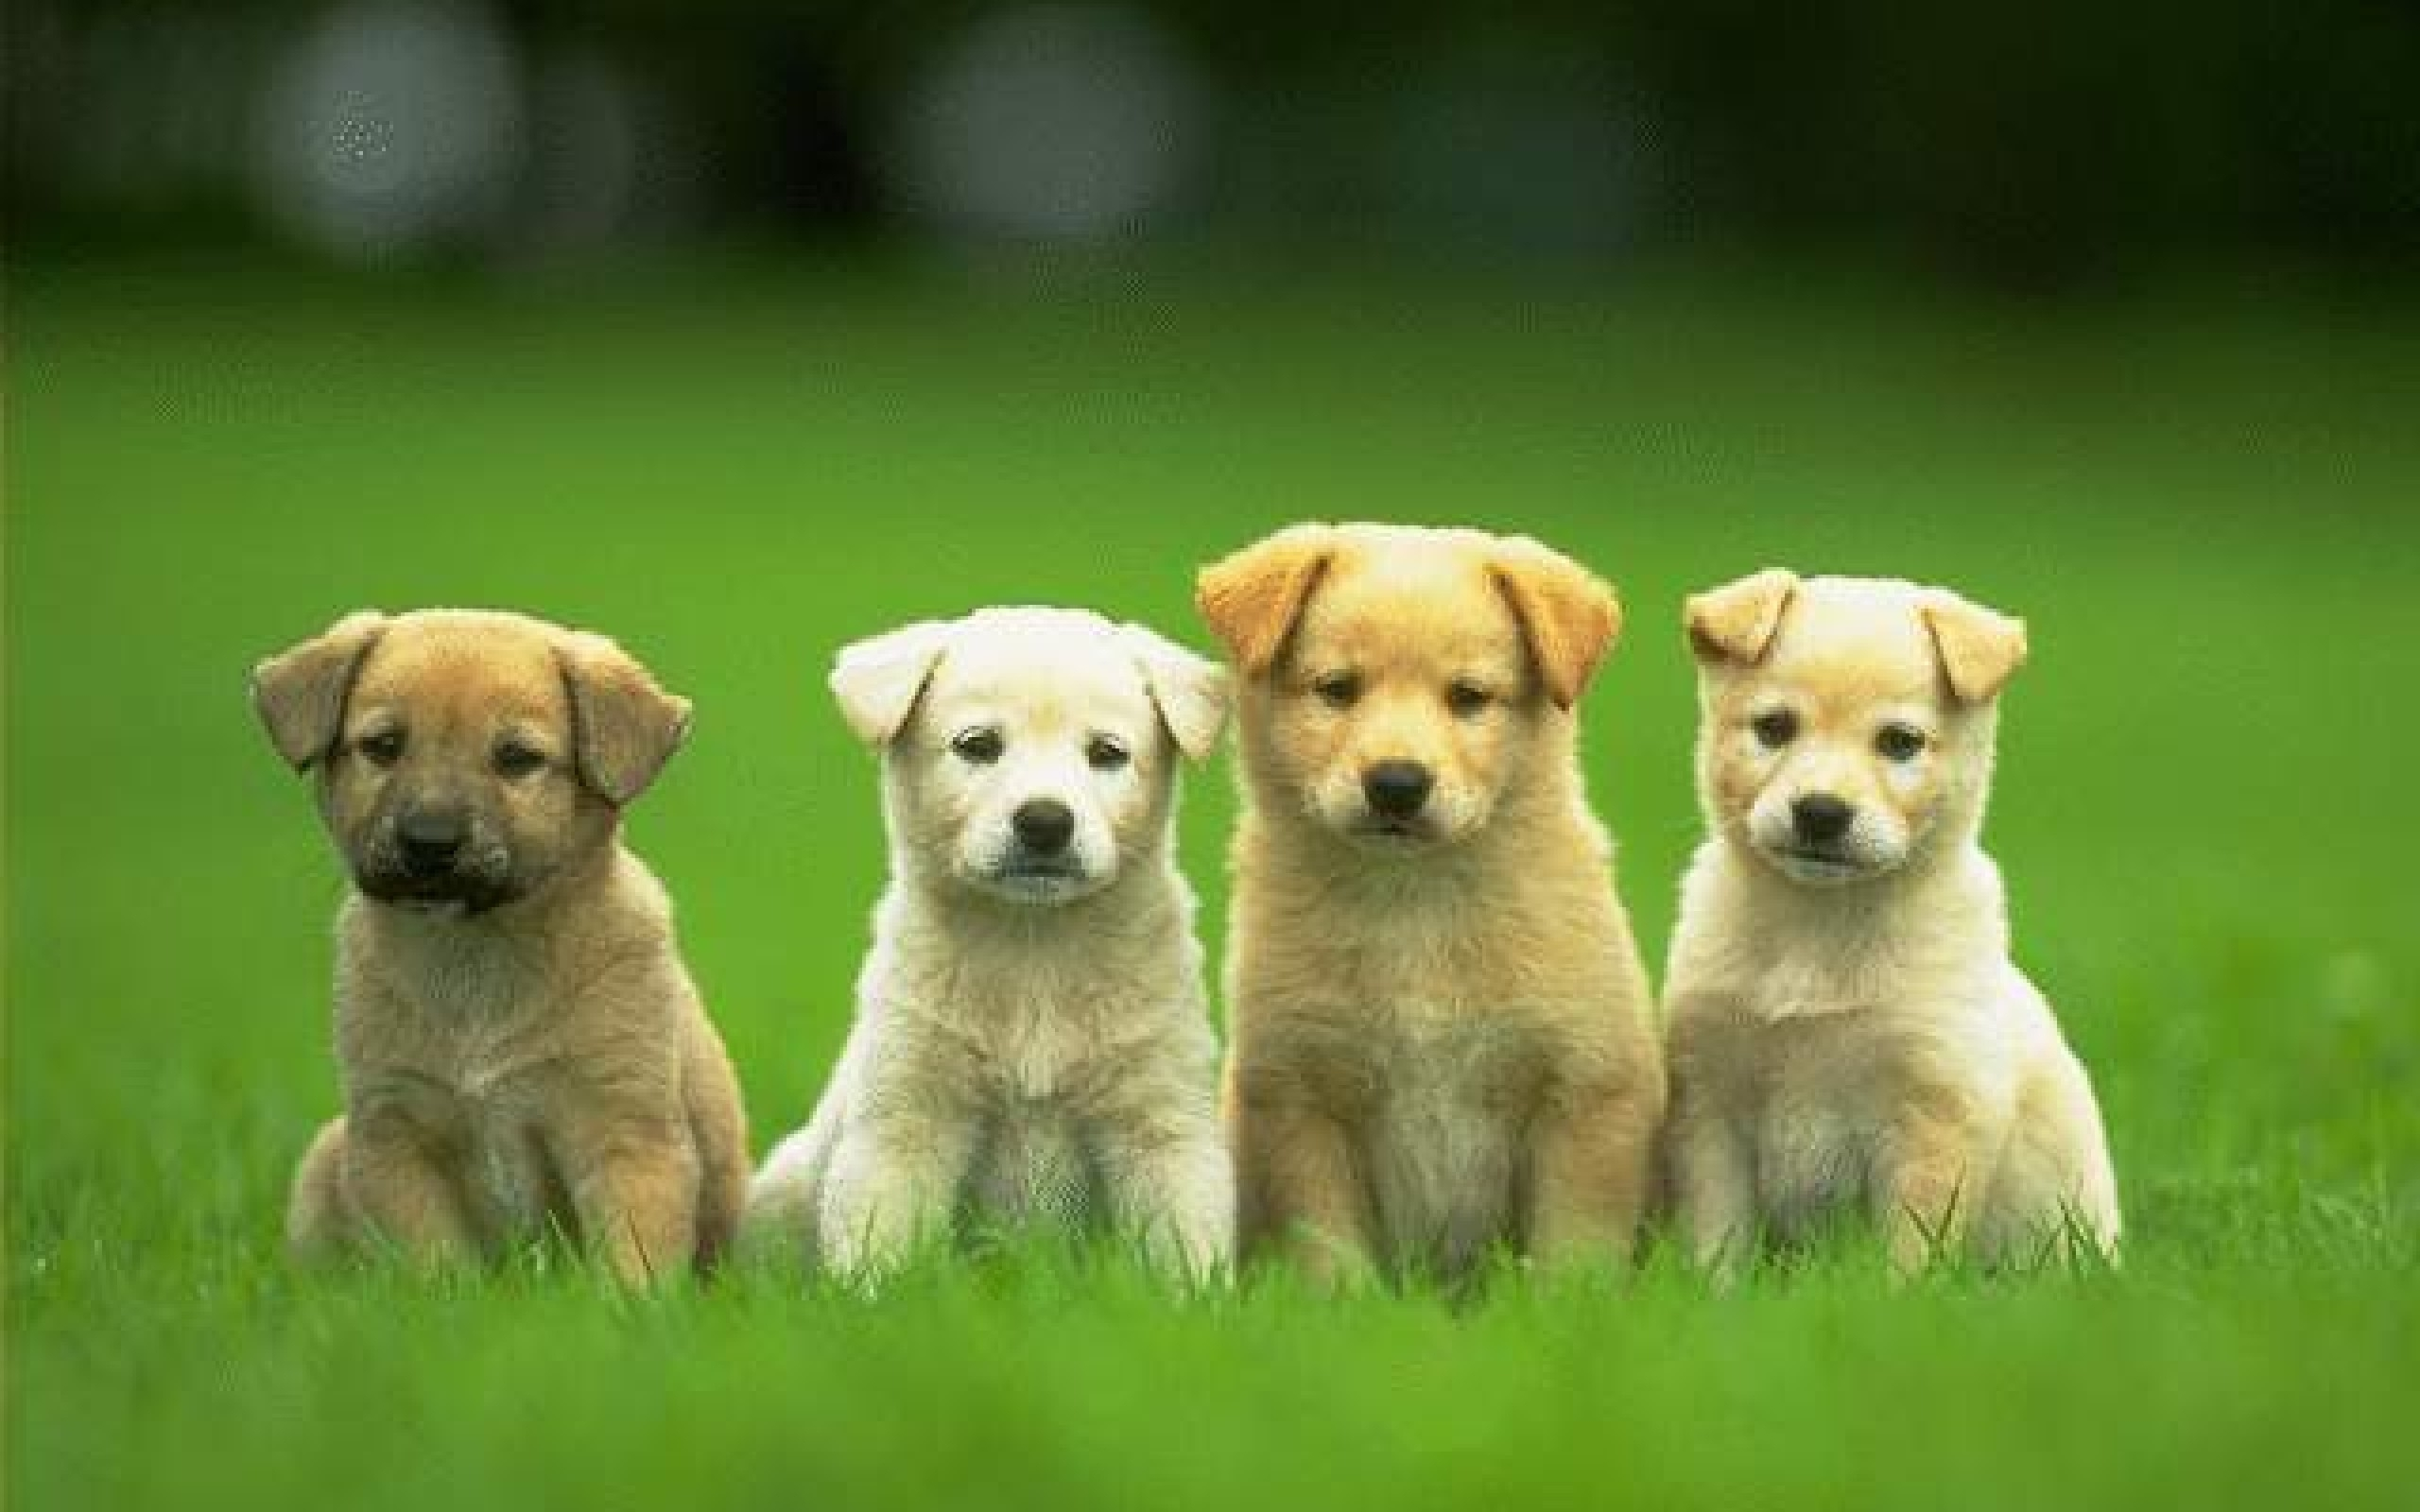 Free Download Four Cute Puppy Dog Wallpaper Hd Wallpaper Backgrounds